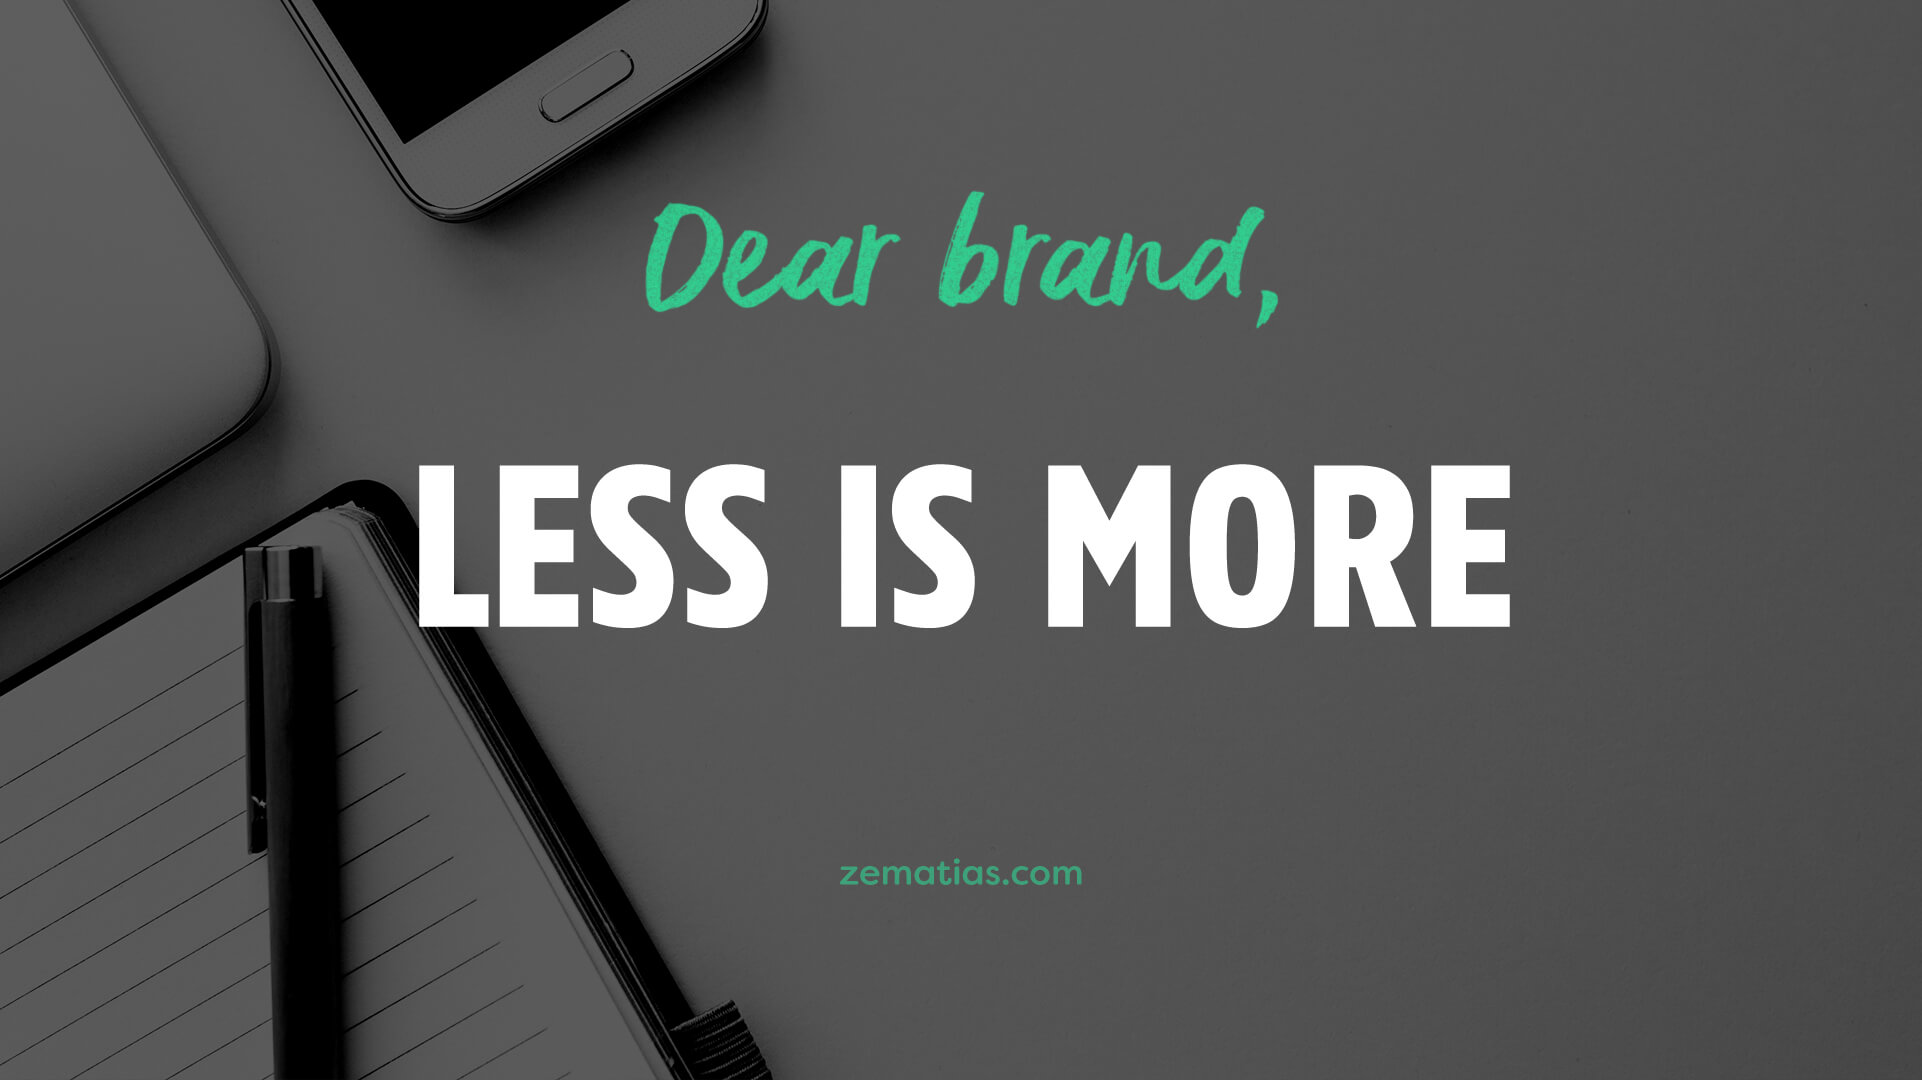 dear-brand-less-is-more